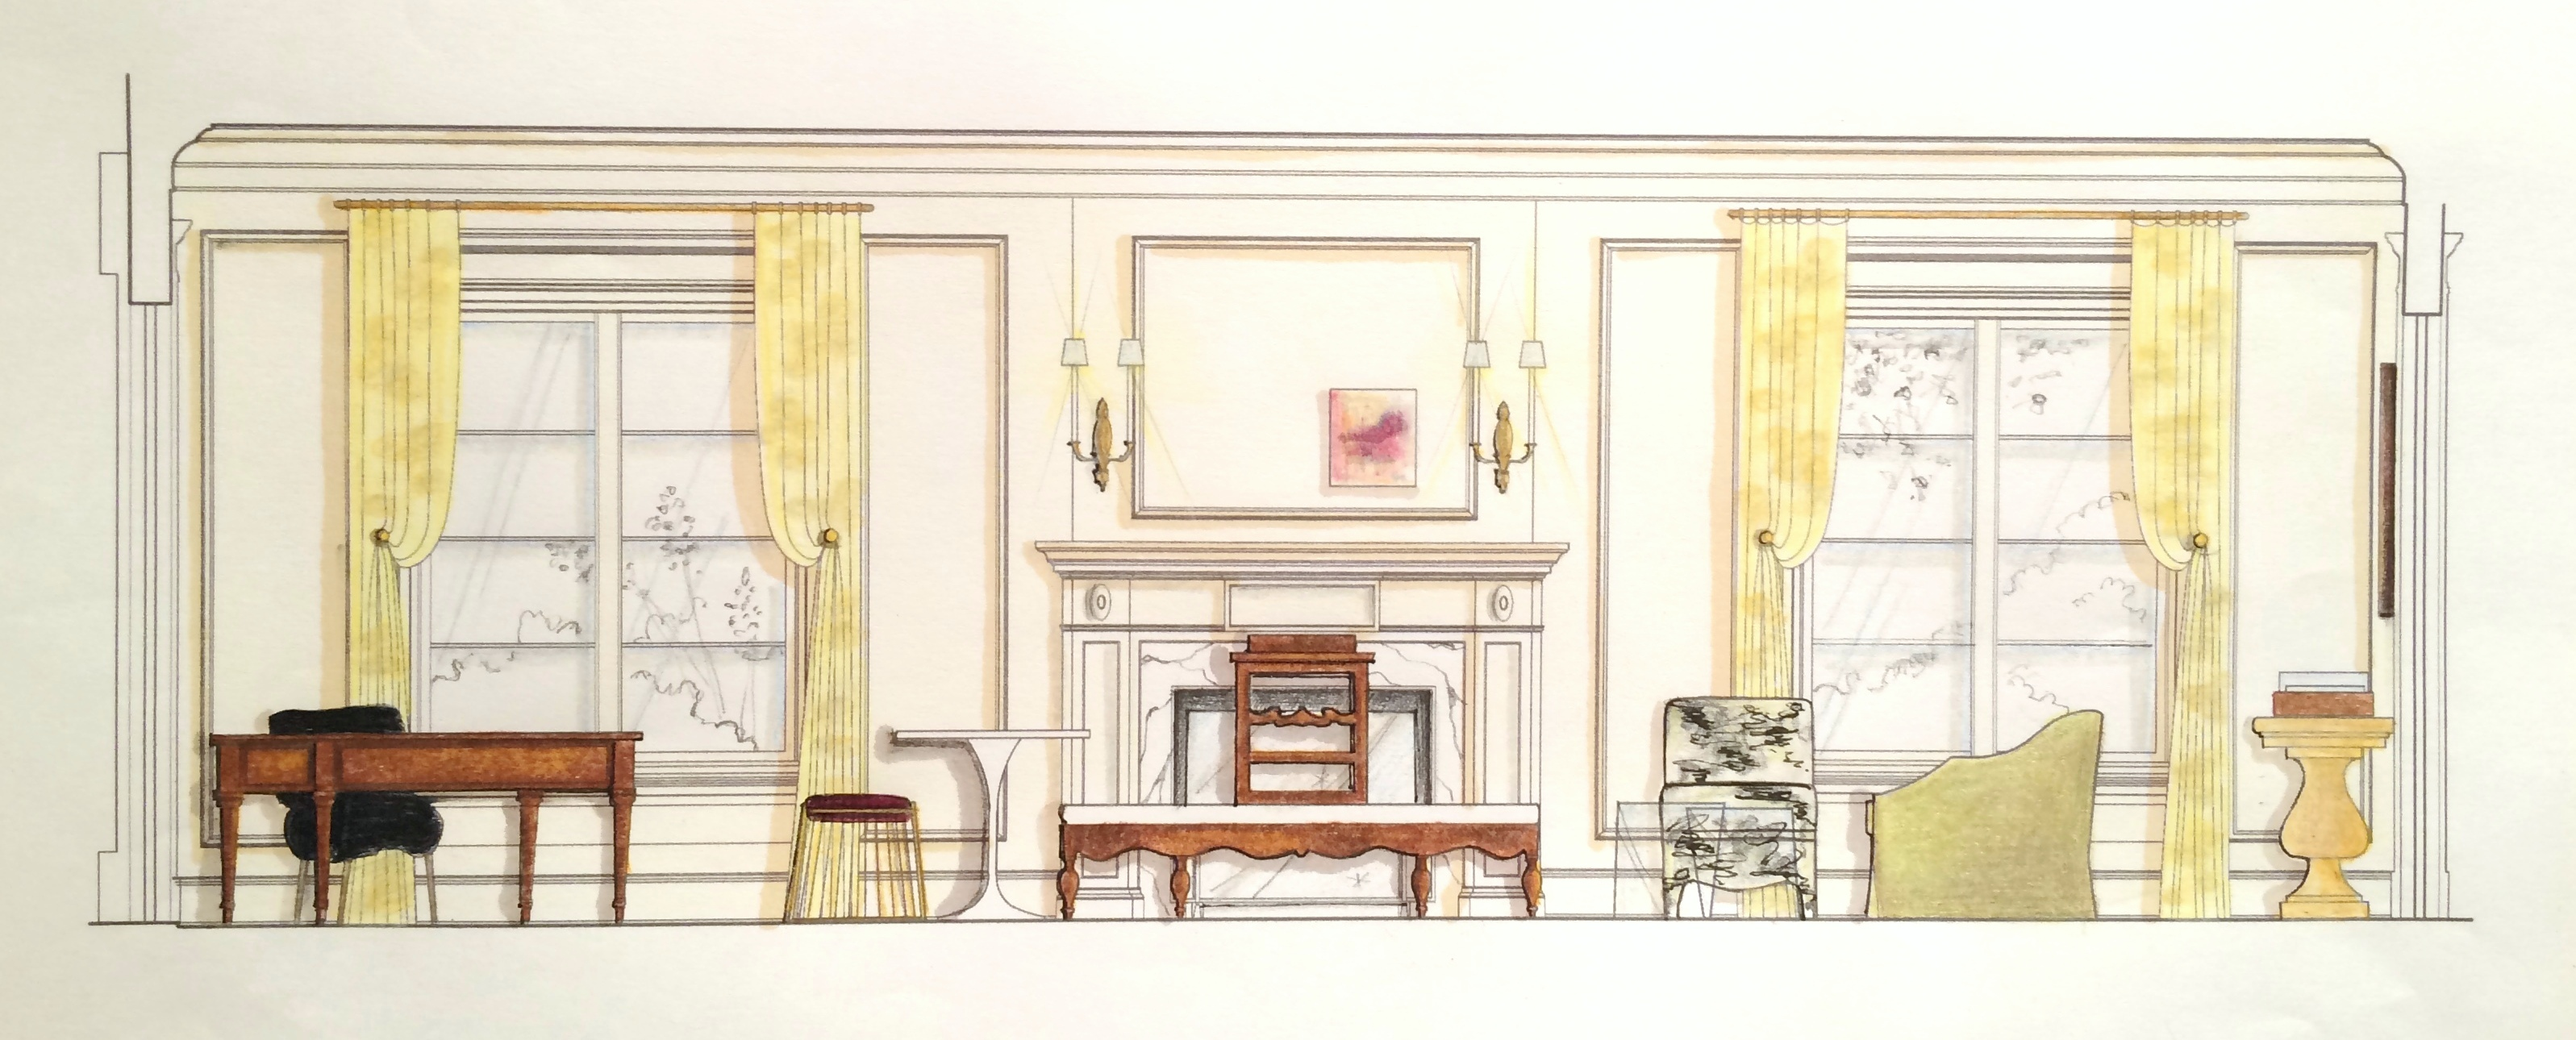 dc design house 2016 drawing huntley & co.